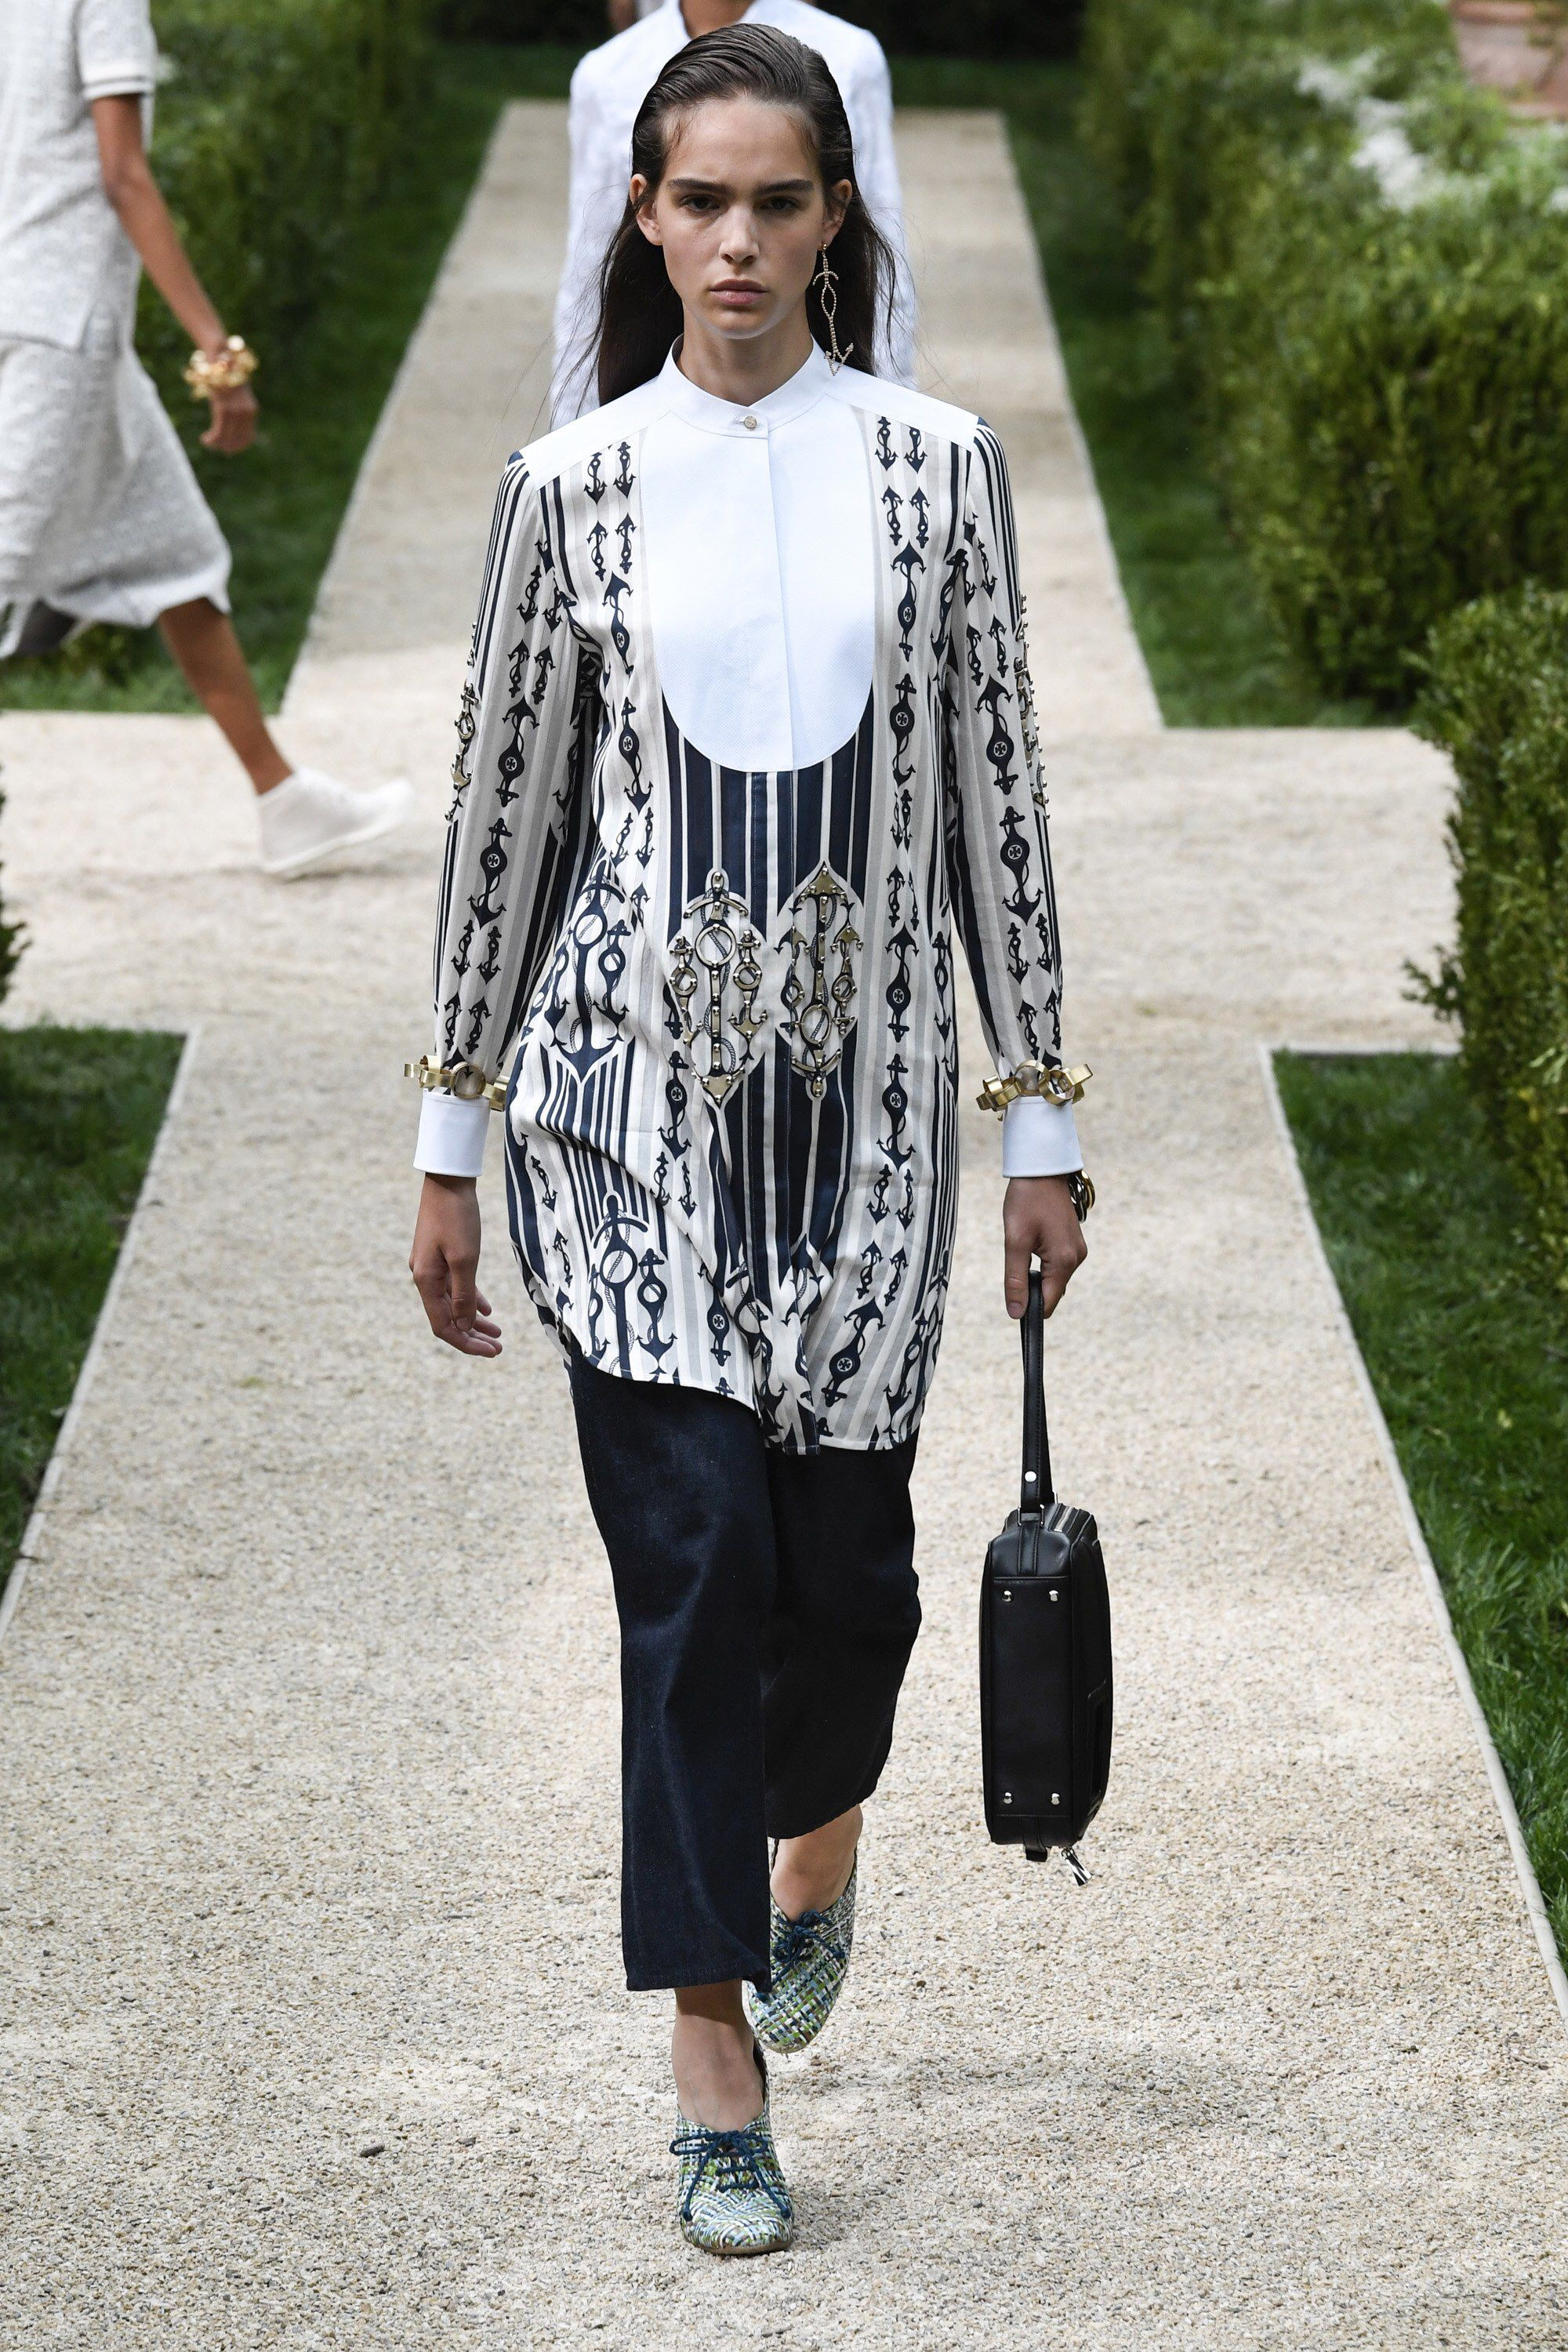 0a1be632e3 Tory Burch Spring 2019 Ready-to-Wear Fashion Show Collection: See the  complete Tory Burch Spring 2019 Ready-to-Wear collection. Look 29